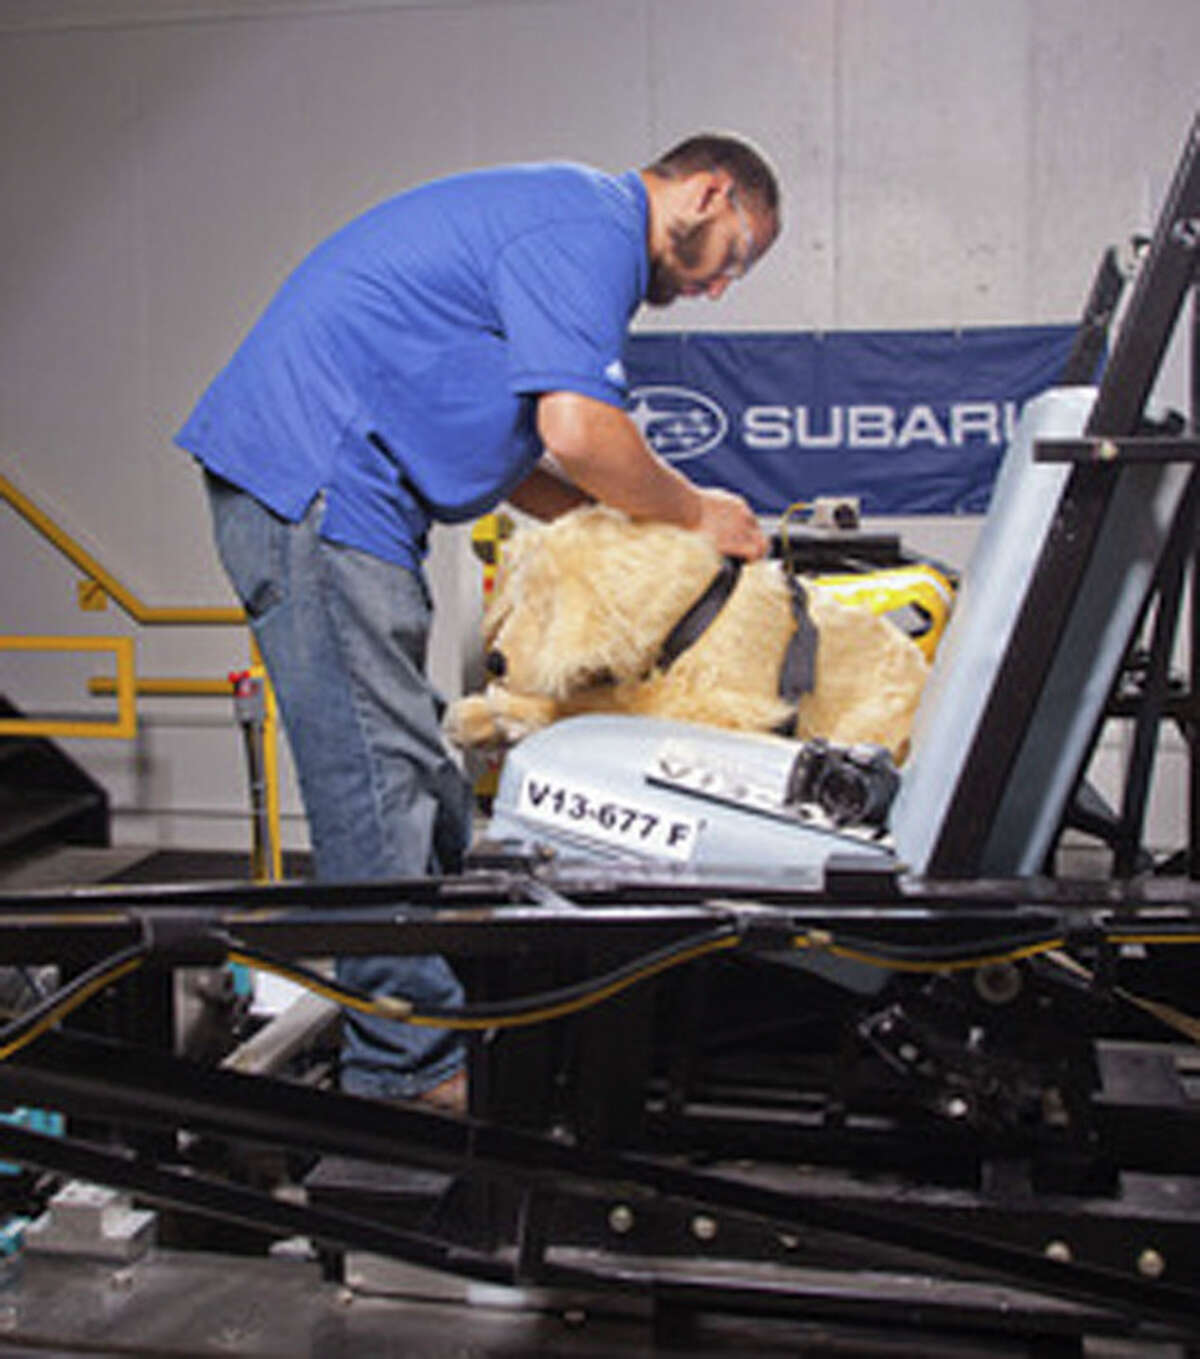 This June 2013 image provided by Subaru shows MGA Research Corp. staff preping a crash test dog for testing. Subaru and the Center for Pet Safety in Manassas, Virginia. The Center conducted a collaborative crash test study to test the effectiveness of popular pet harnesses. All the dummy dogs used to test dog restraint harnesses for the Center for Pet Safety make up a team of what is believed to be the nation's first instrumented, weighted and correct canine prototypes. (AP Photo/Subaru)